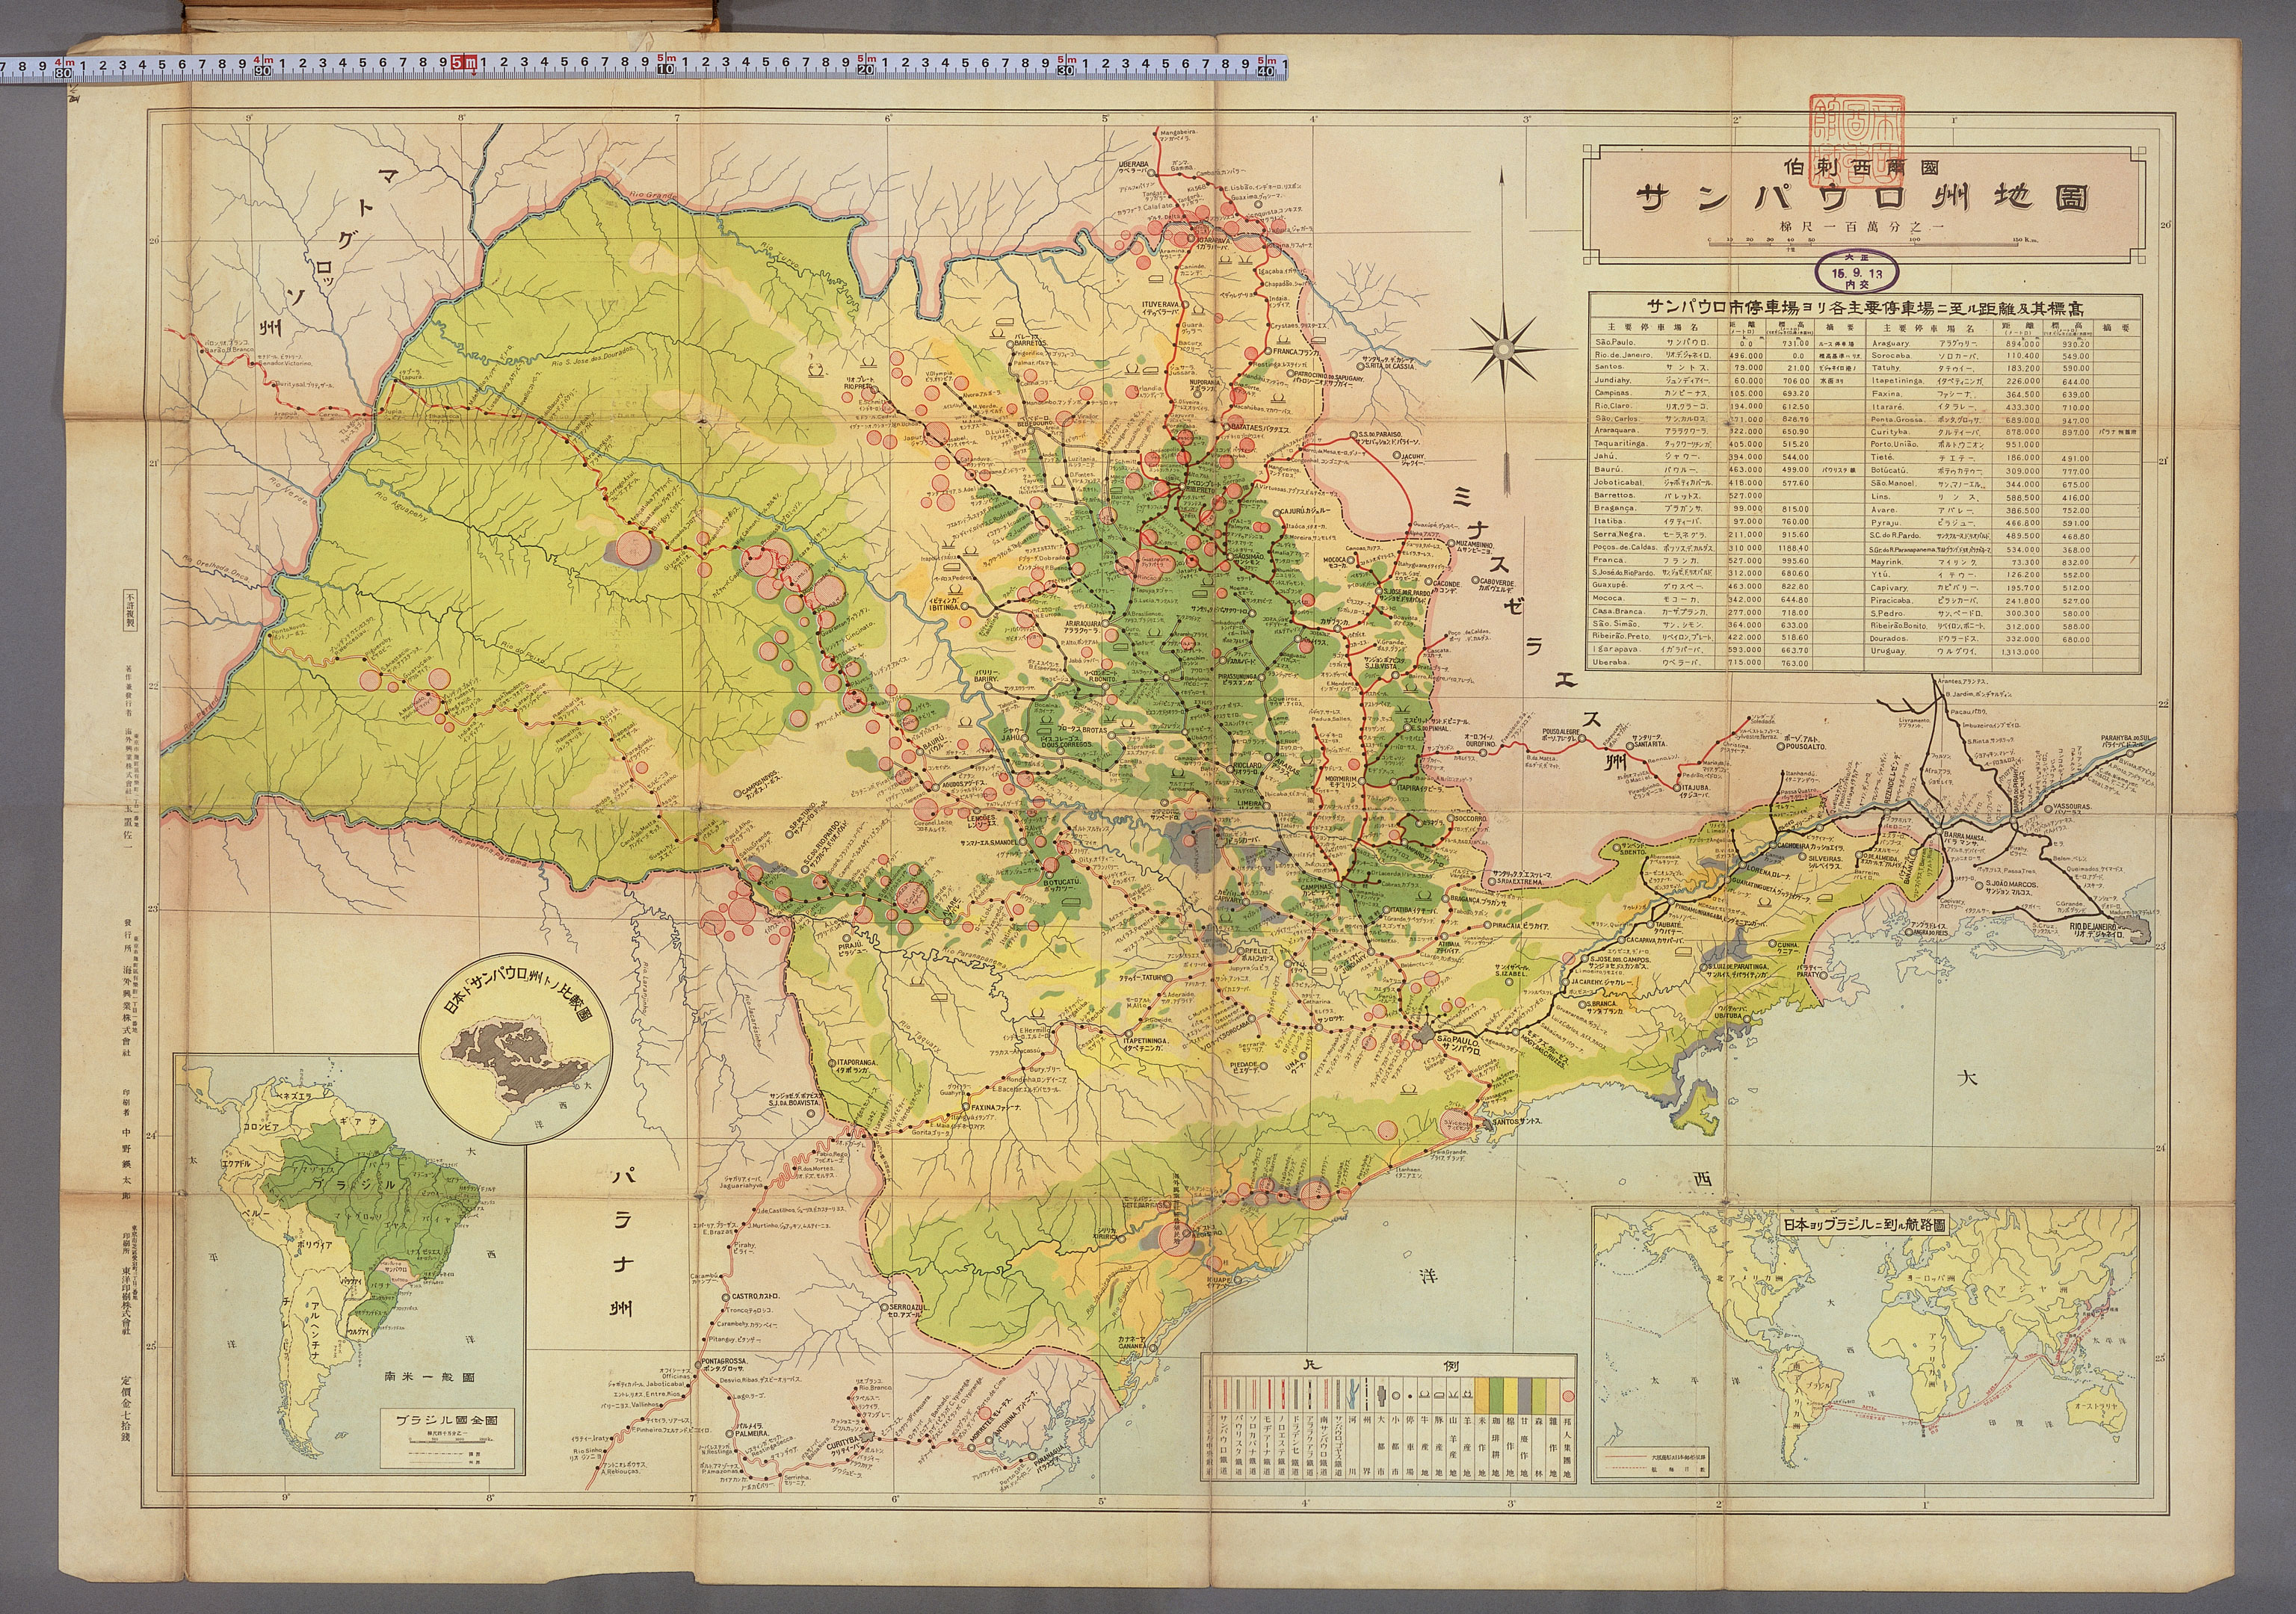 Sao Paulo State Map.Image Of Map Of Japanese Immigrants Population In Sao Paulo State